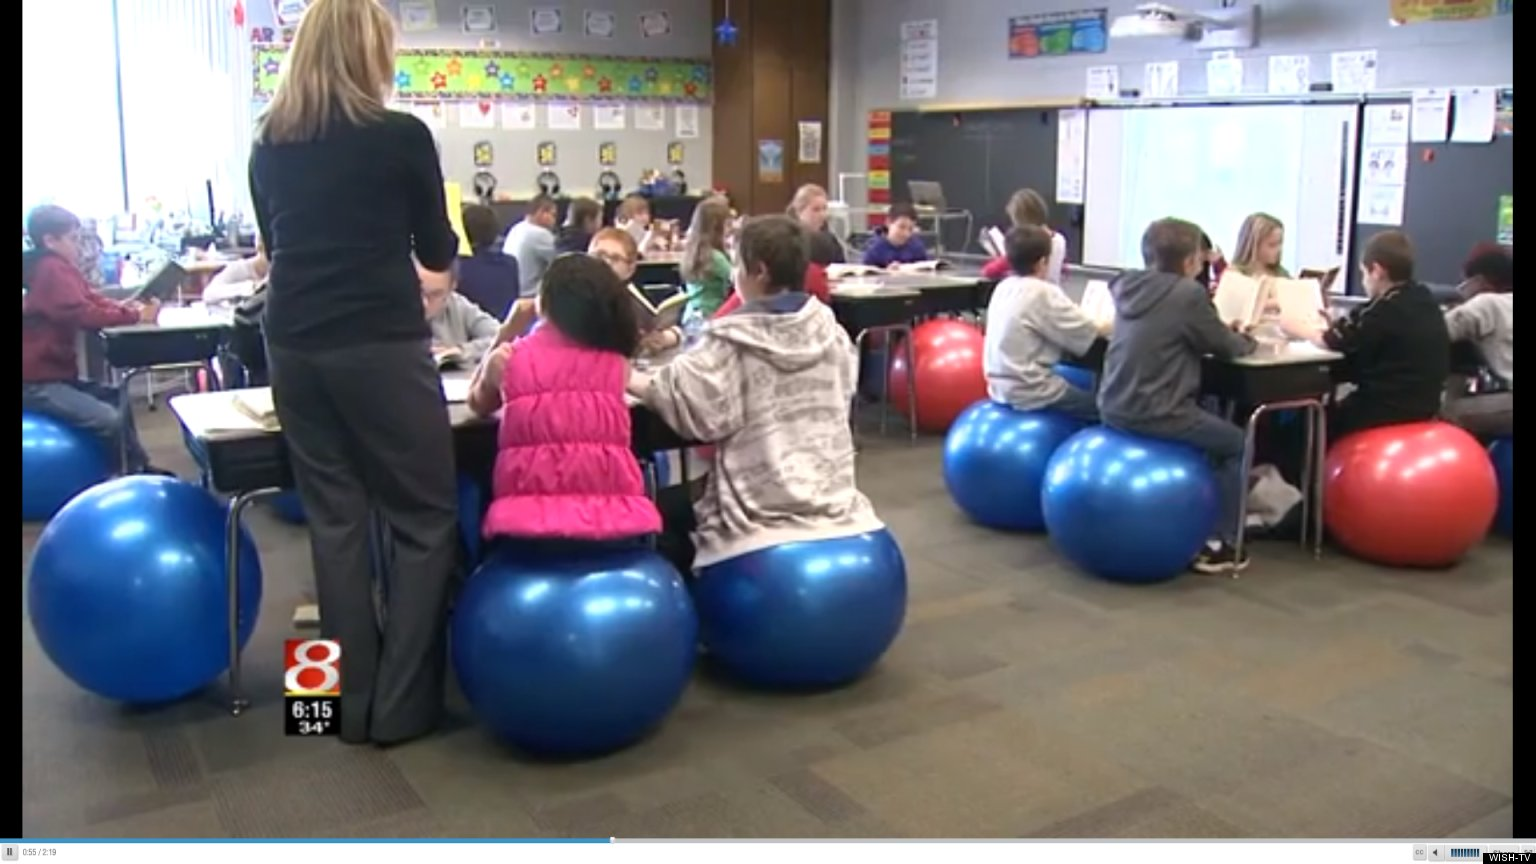 yoga ball chair exercises mode sara wright indiana teacher swaps exercise balls for